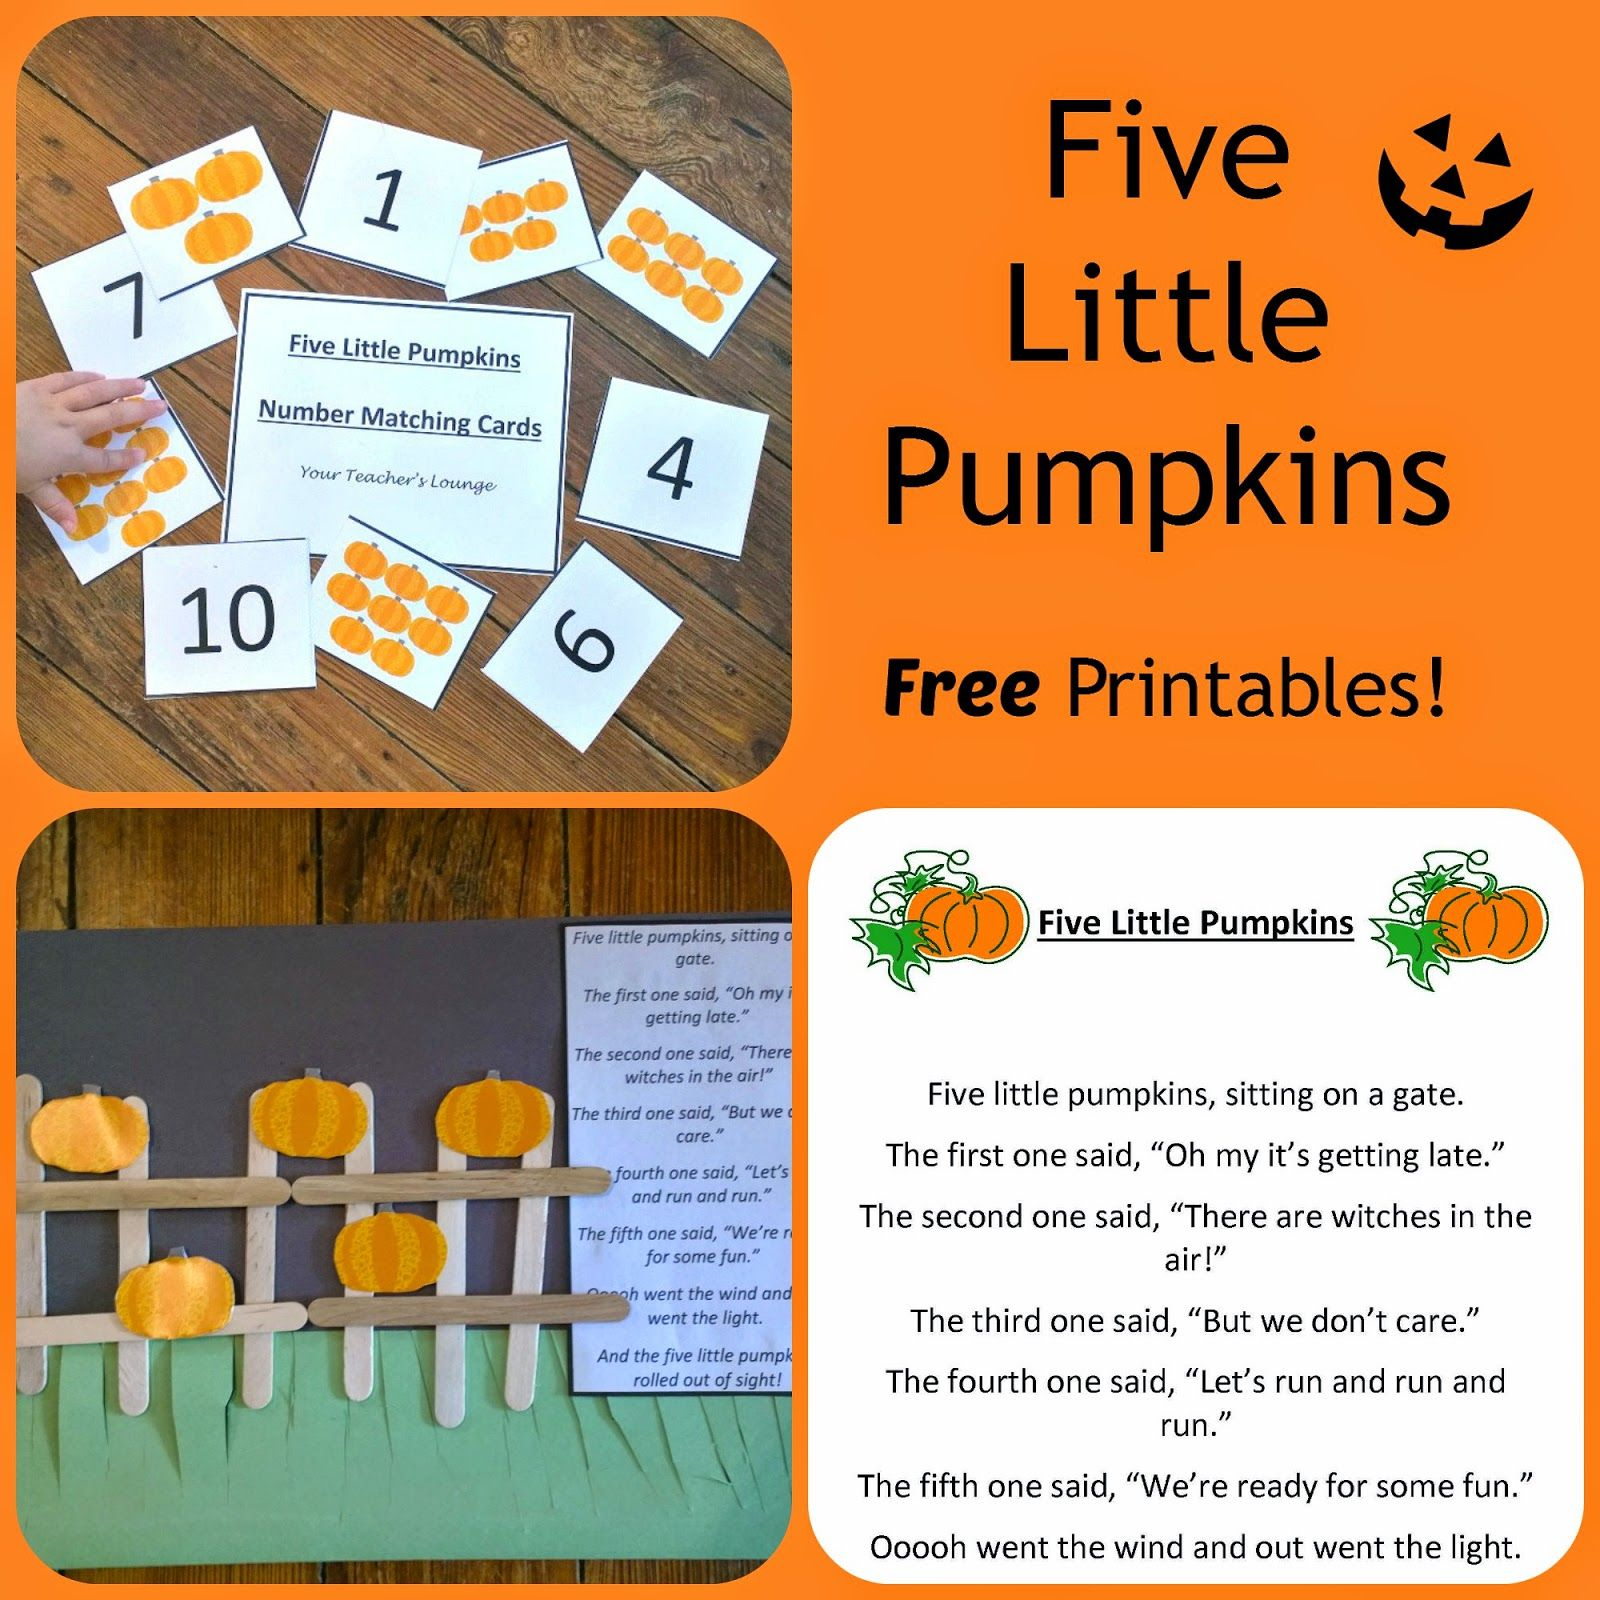 5 Little Pumpkins Poem Craft And Number Matching Cards Free Printables